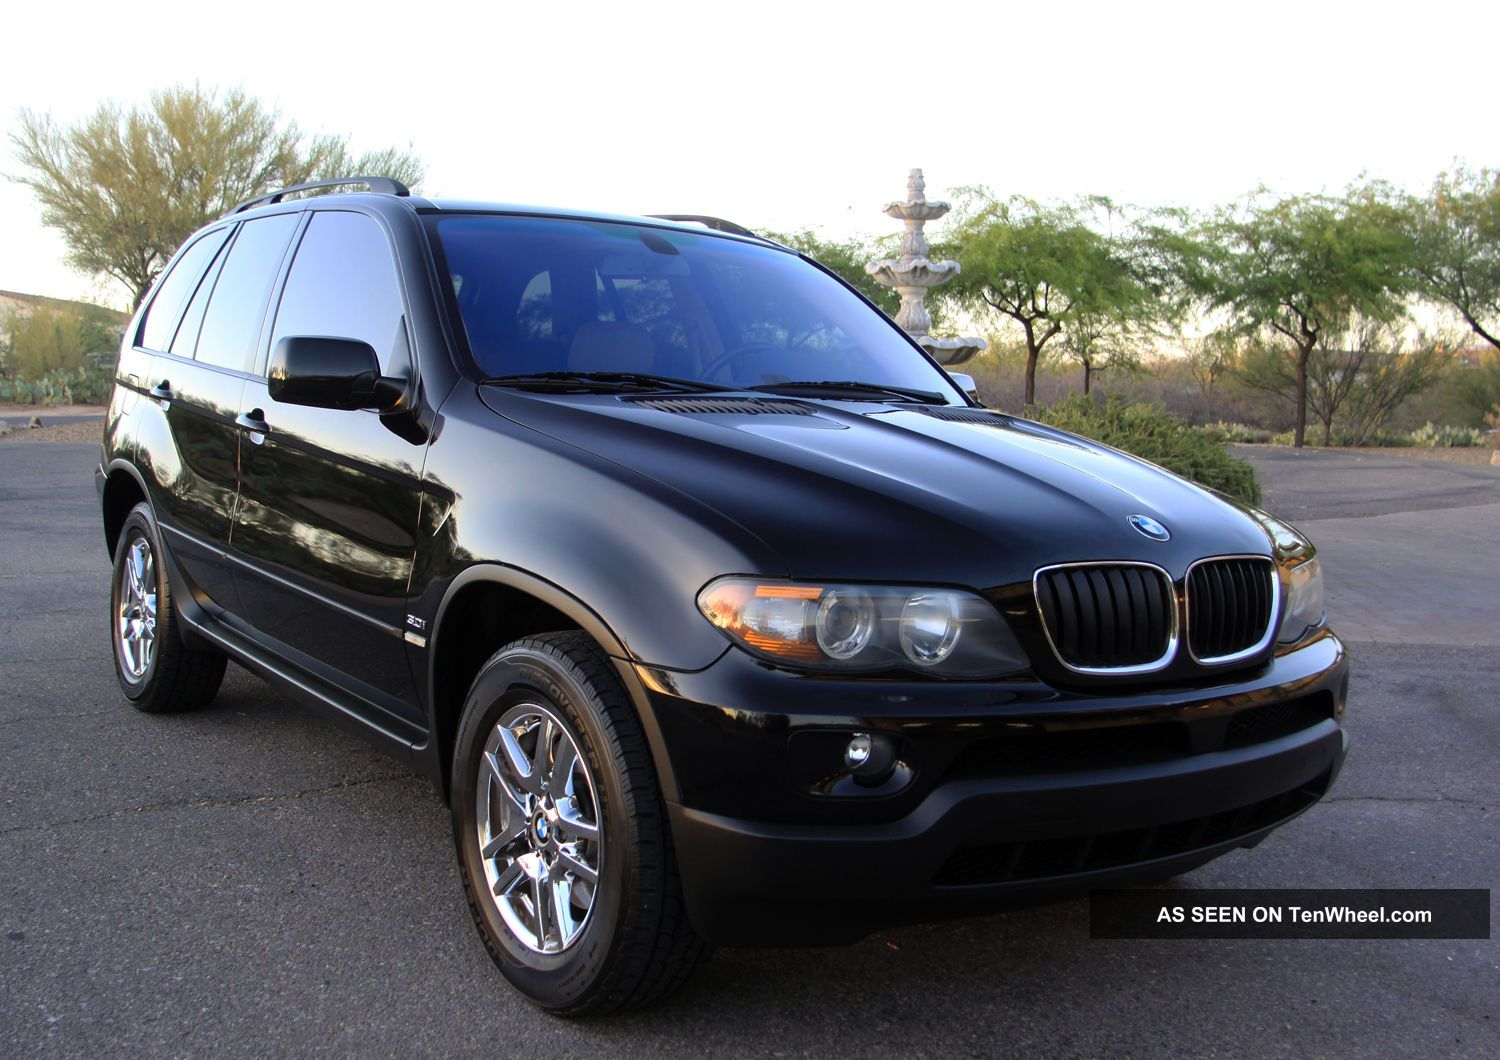 2005 Bmw X5 3 0i Suv 4 Door Arizona Car 1 Owner